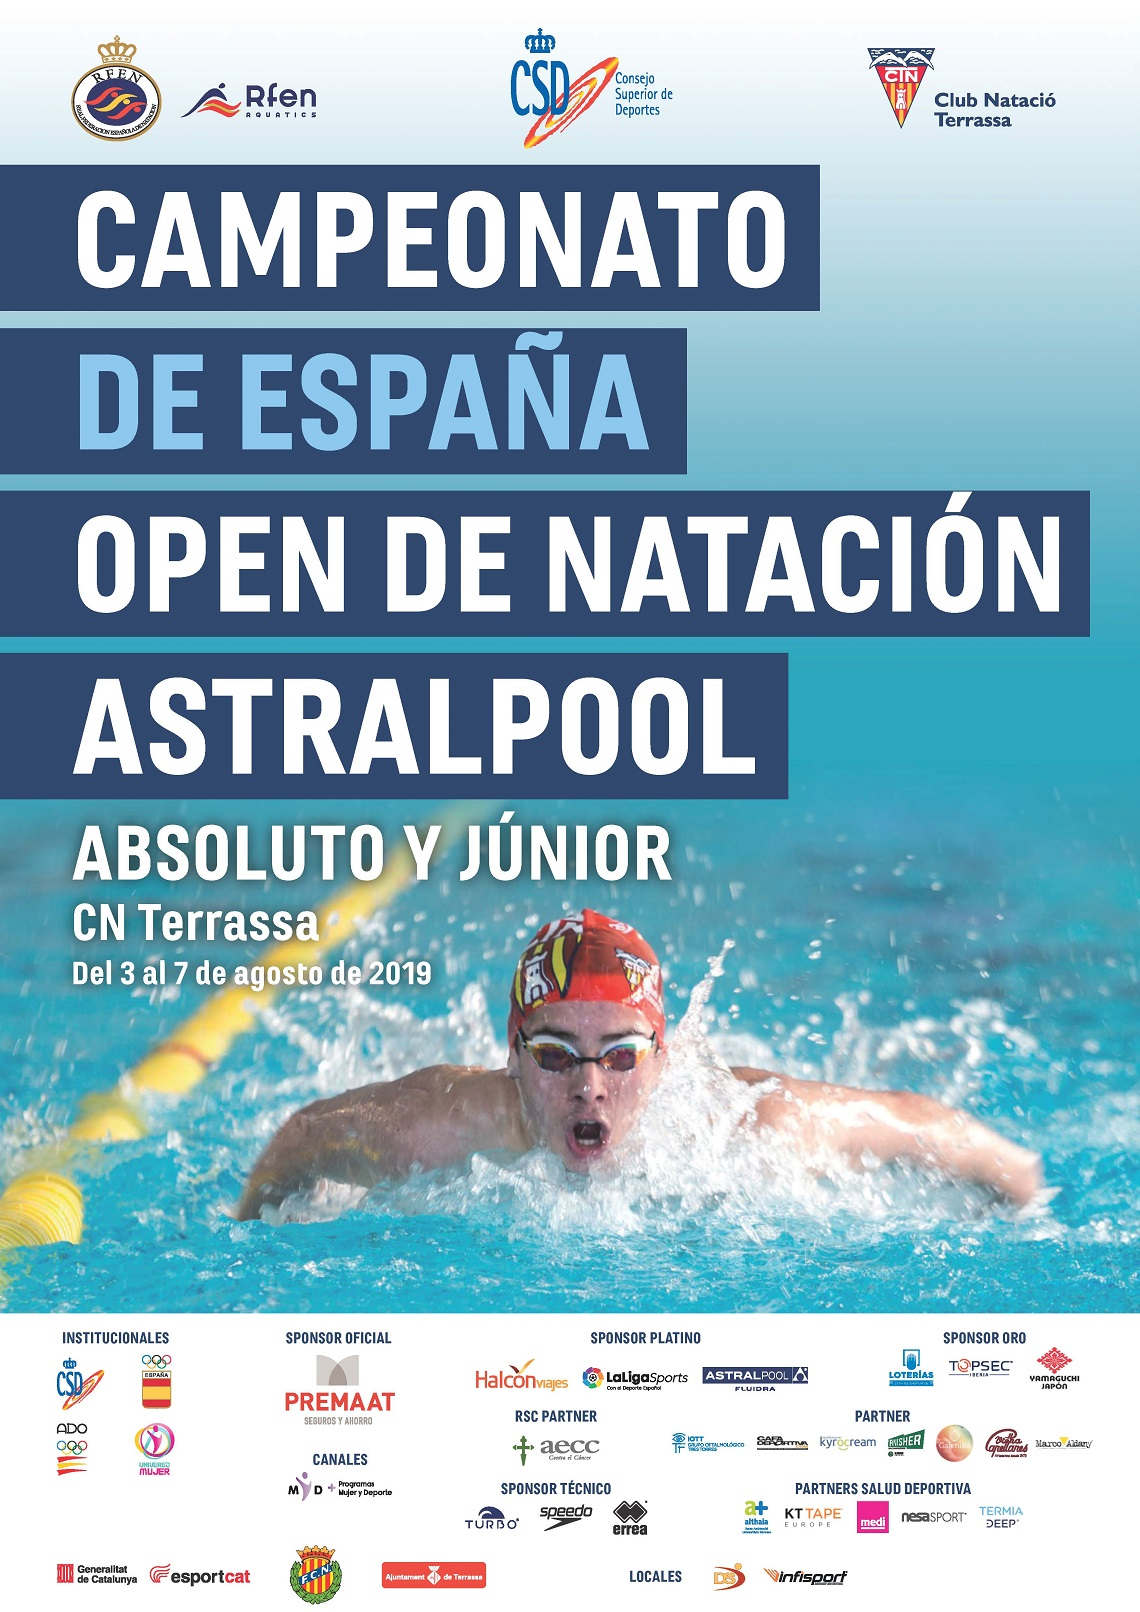 CTO. DE ESPAÑA OPEN ABSOLUTO Y JUNIOR DE VERANO – ASTRALPOOL